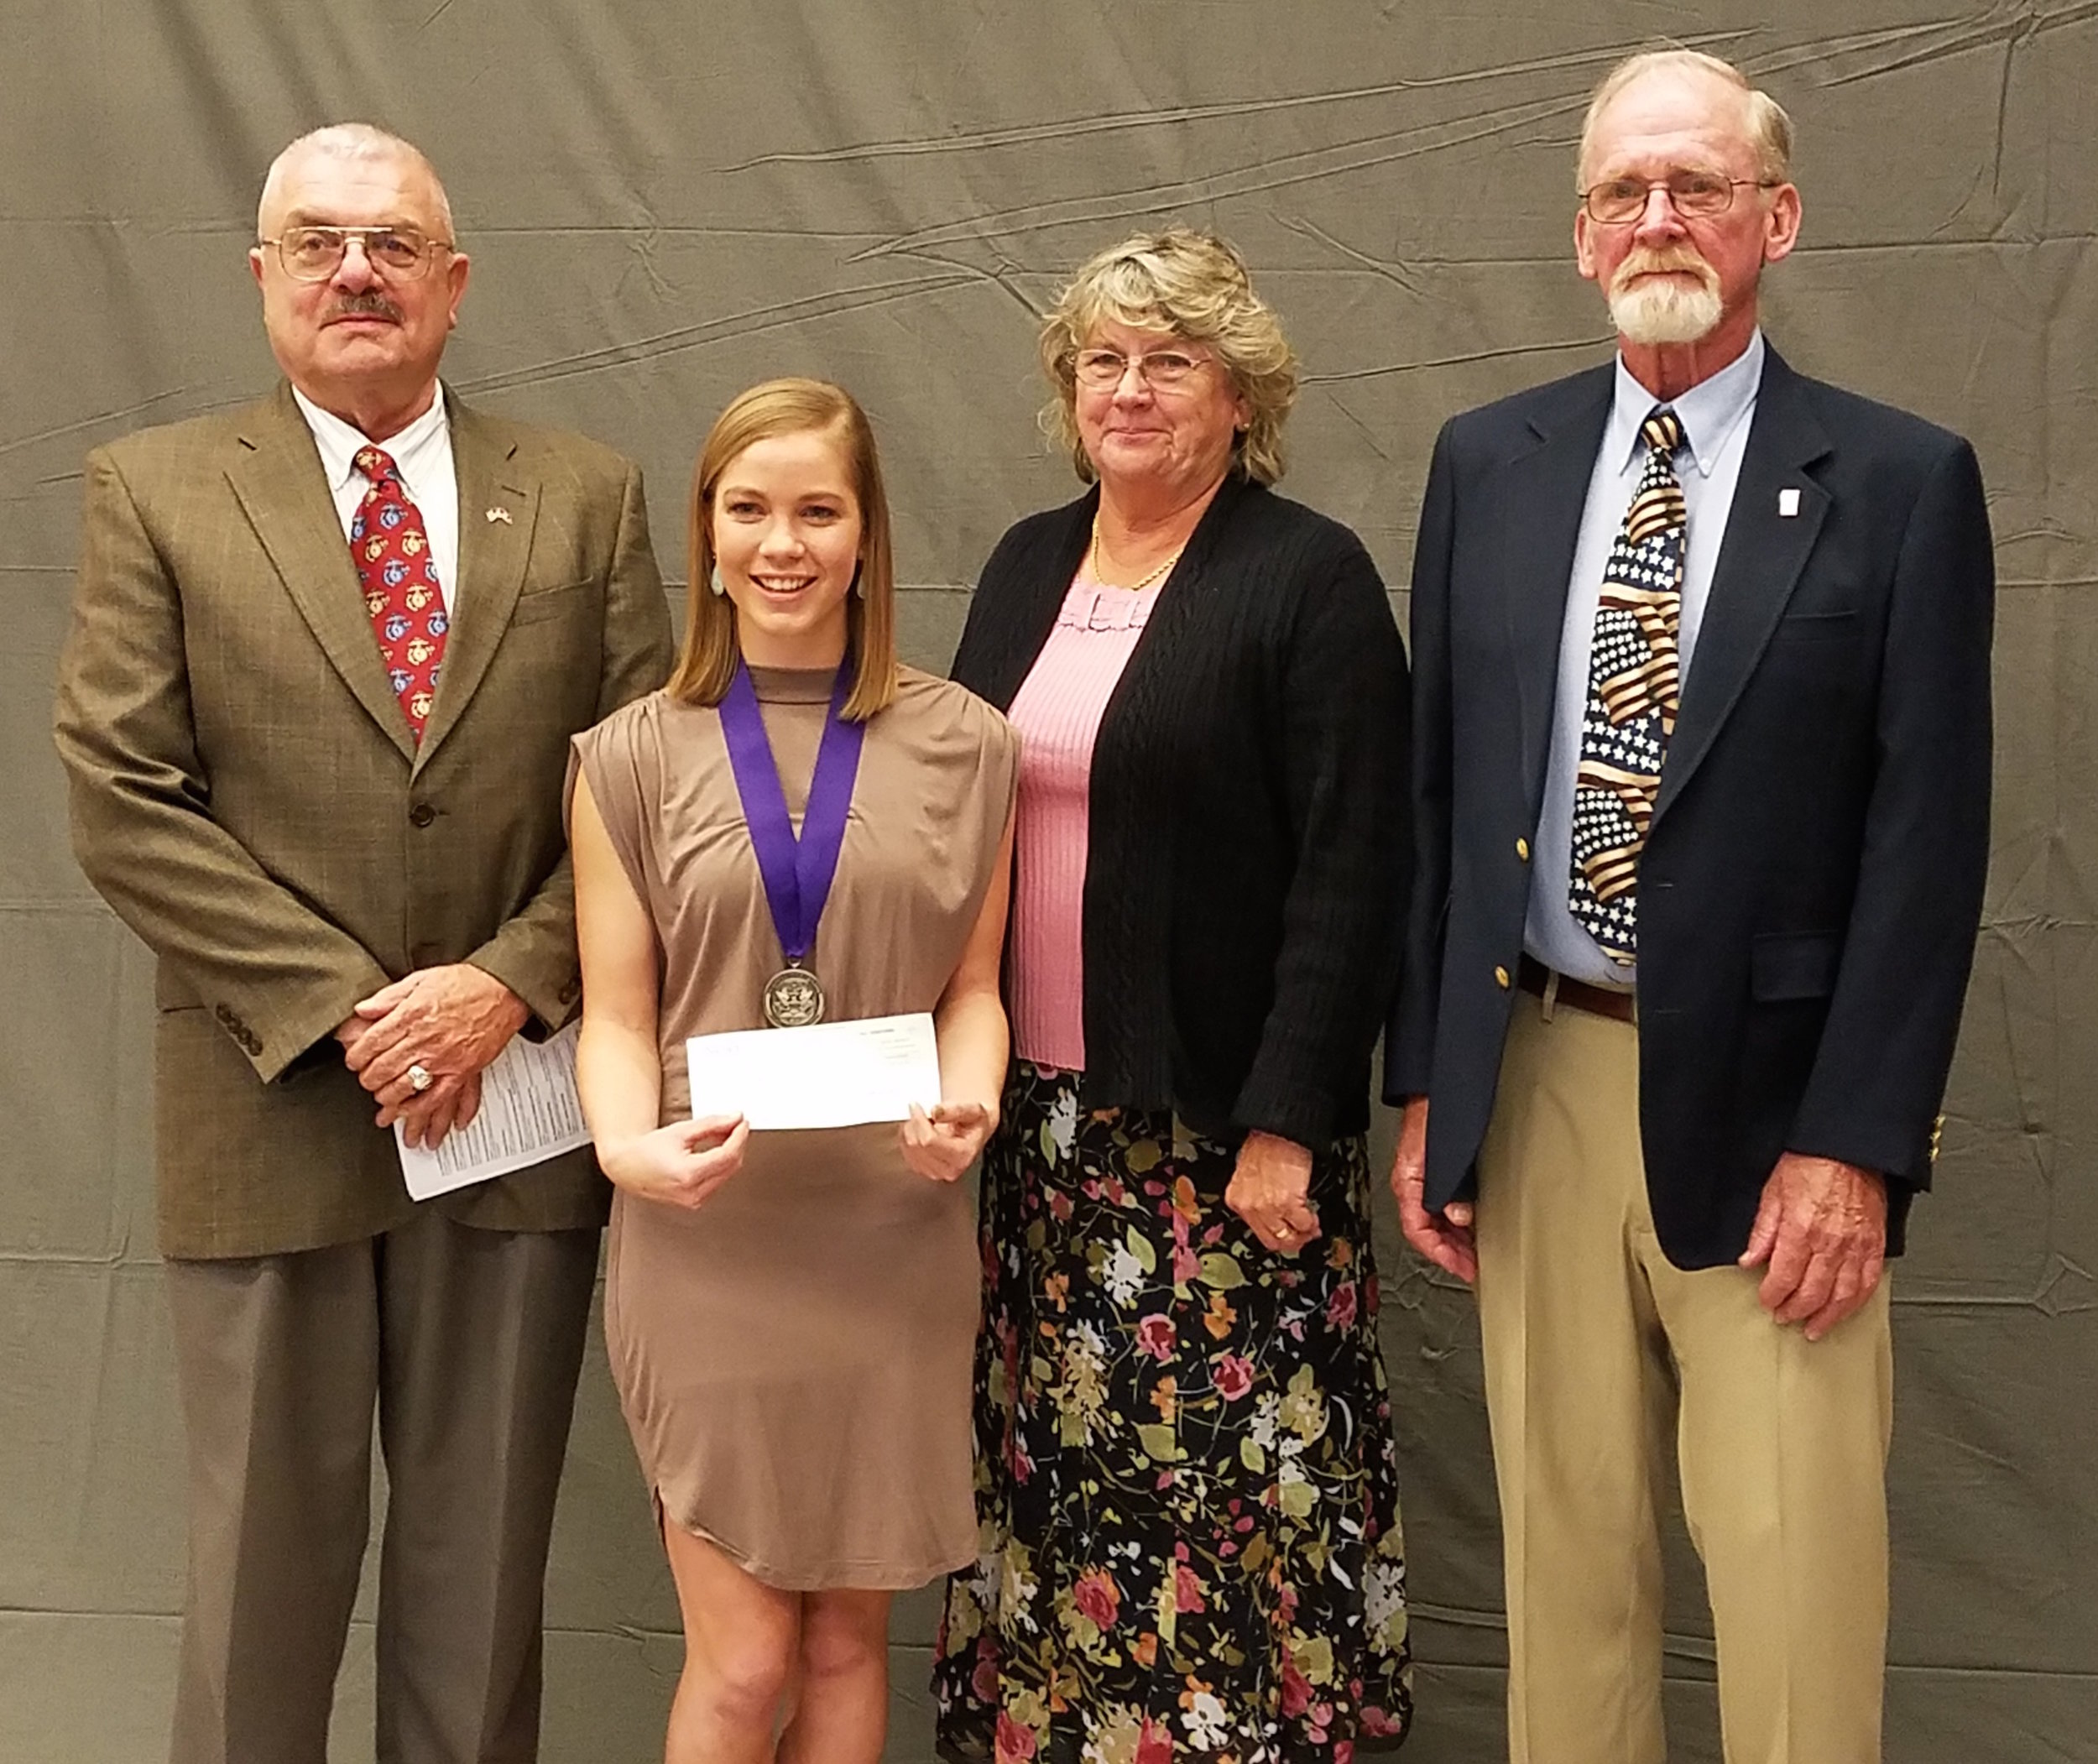 Emma Harvey received the Eric McColley Scholarship of Honor from Gettysburg High School. She is pictured here with Eric's Parents and co-chair of the scholarship, Stan Clark